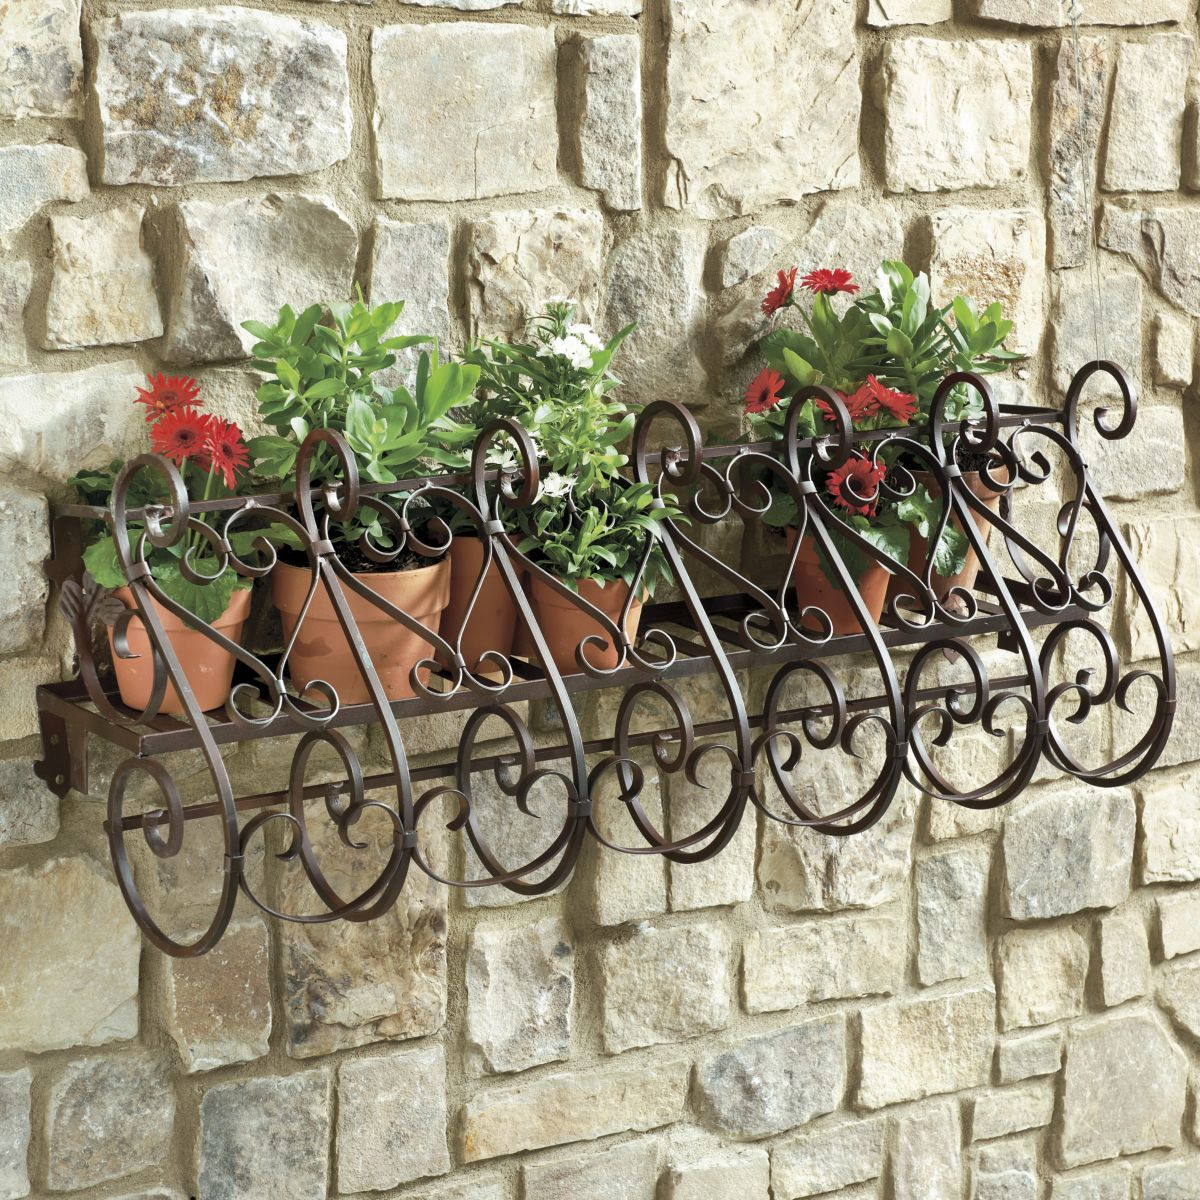 Nice looking metal forged wall flower stand resembling the top of medieval gate